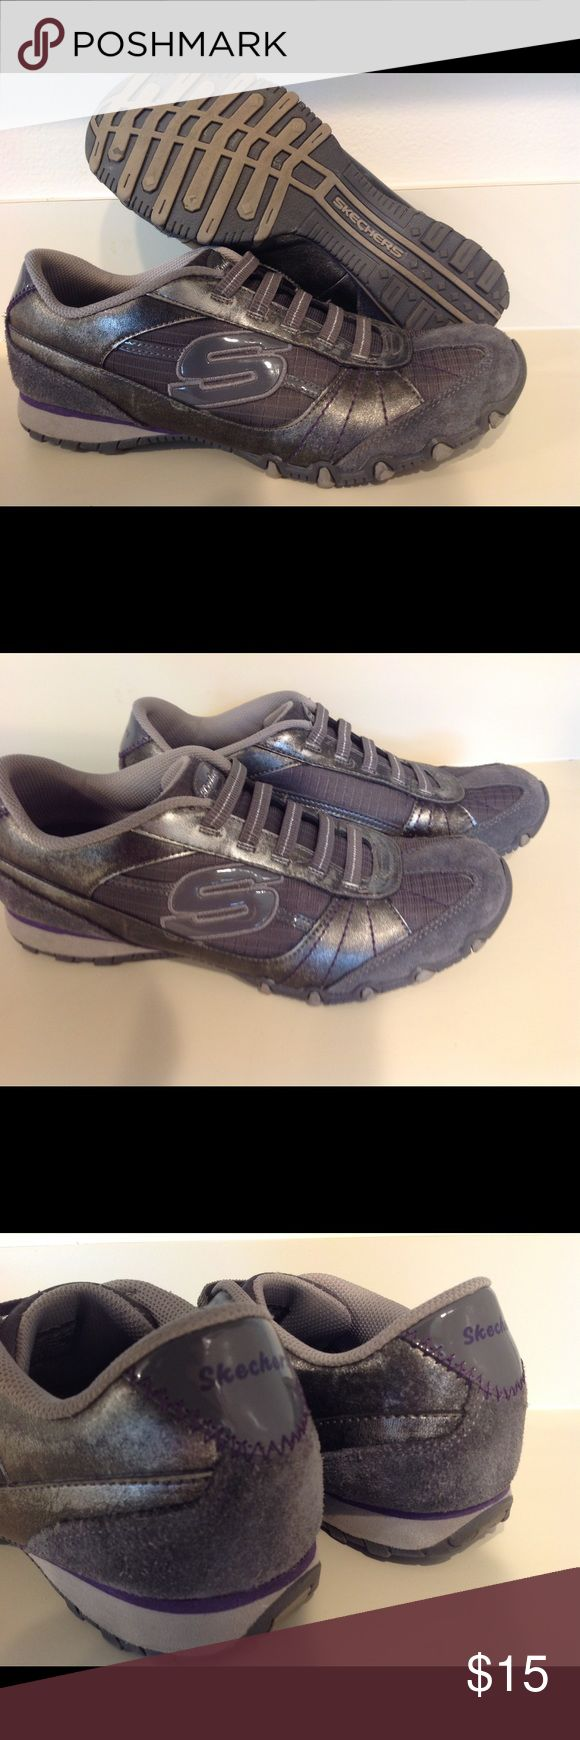 Sketchers Grey and silver with elastic straps 8.5 This is a pair of ladies Skechers Grey and silver and a purple trim, tennis shoes size 8.5 in very nice pre owned condition.  They are a leather and synthetic material. Only worn a few times.  See photos for more condition details.  Thank you for looking. Skechers Shoes Sneakers